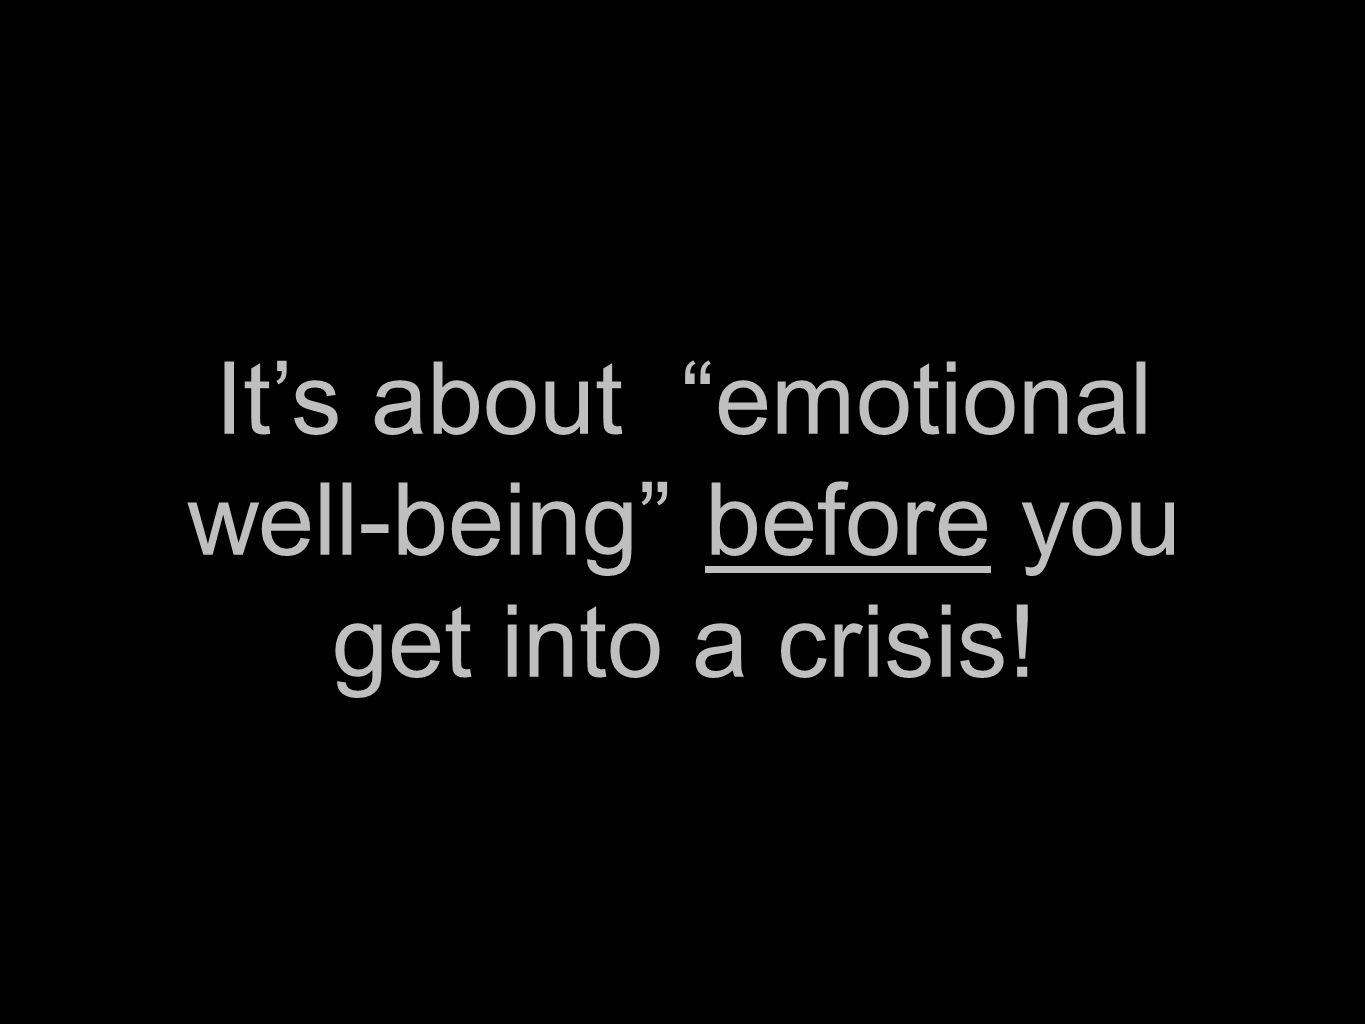 It's about emotional well-being before you get into a crisis!